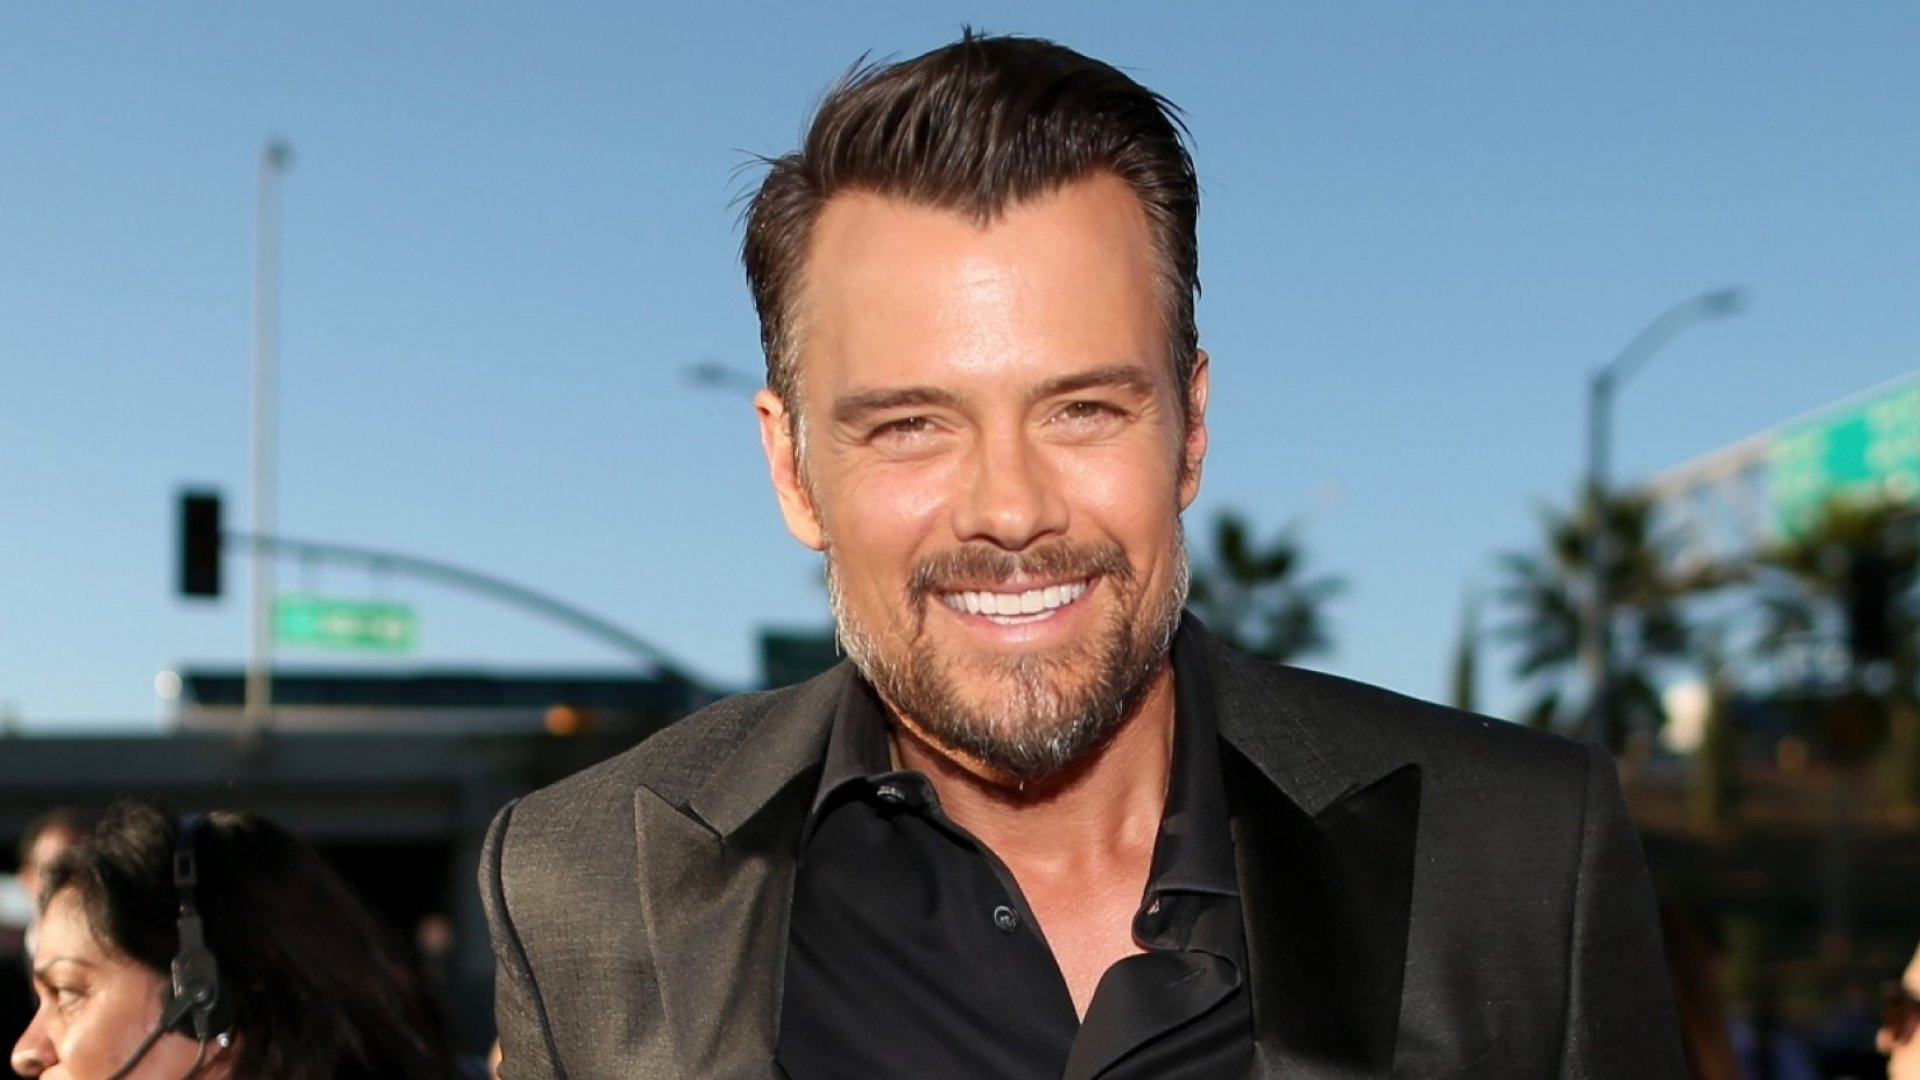 Jeep Wrangler tapped actor Josh Duhamel to help the brand promote National Dog Day.